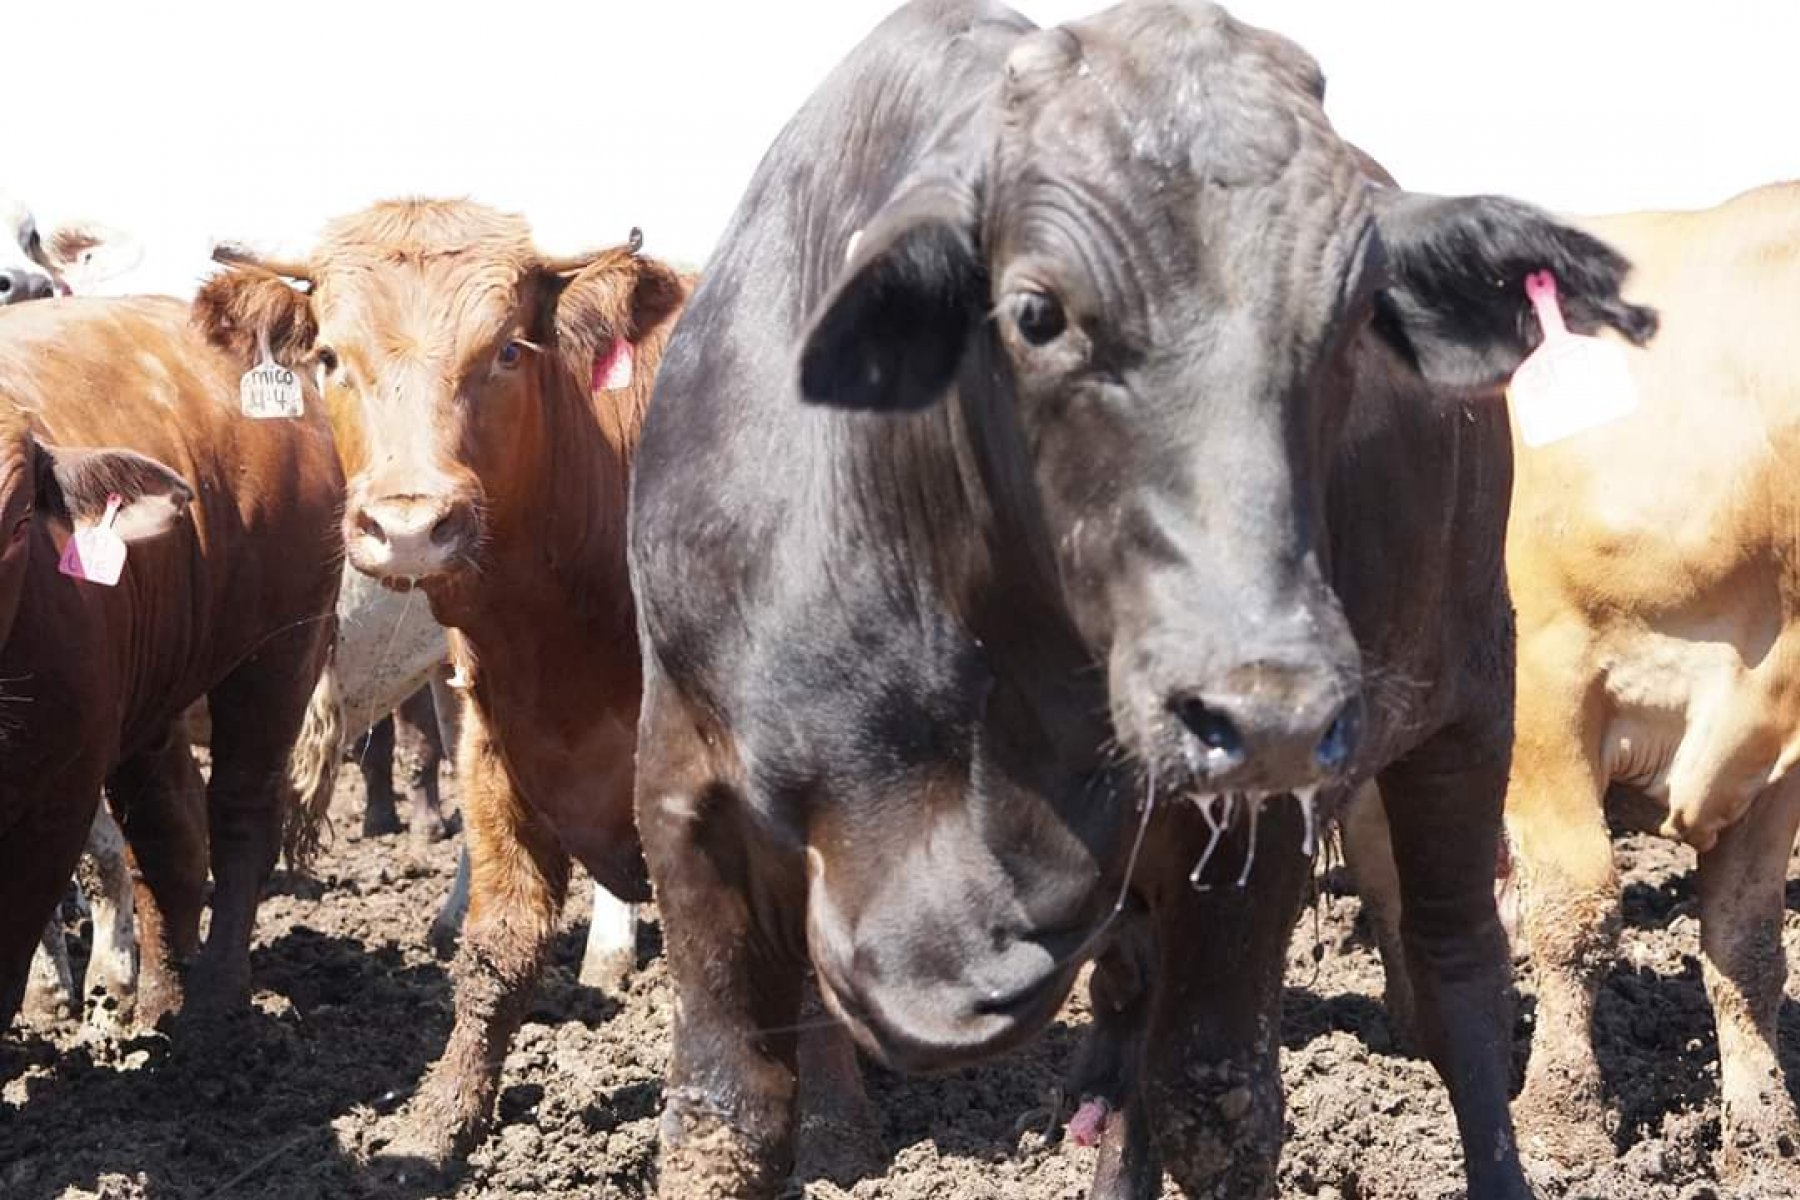 Cattle at a feedlot.